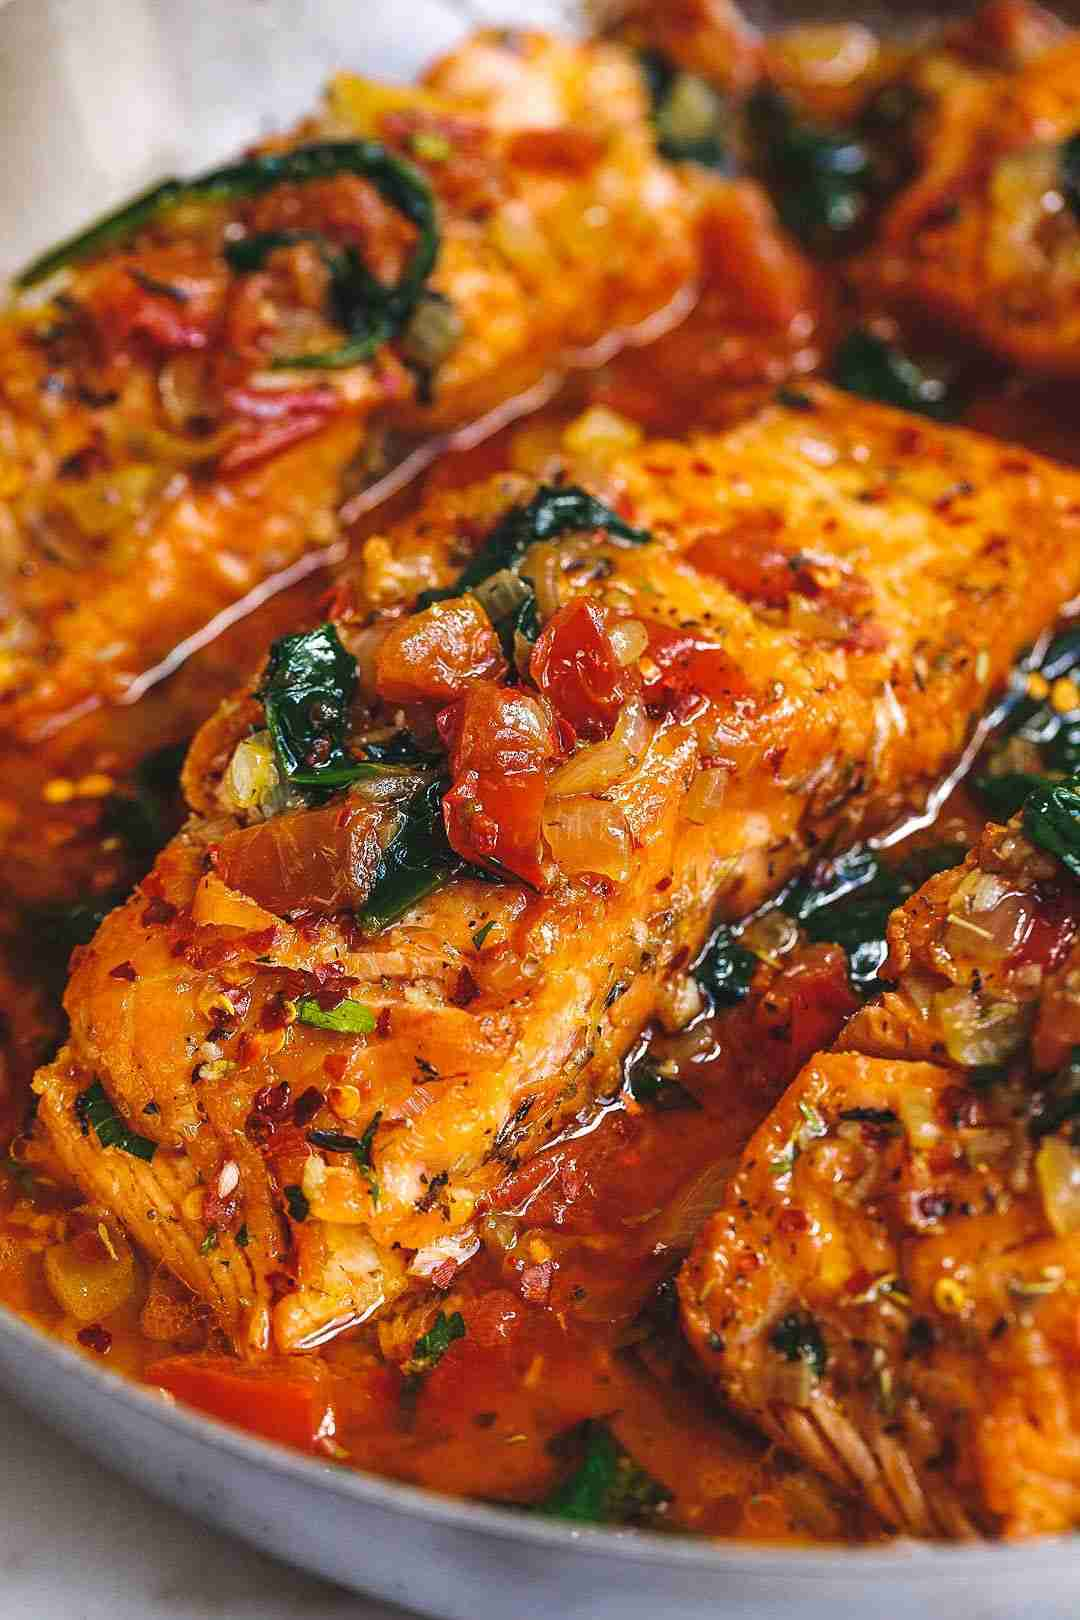 Tuscan Garlic Salmon Skillet with Spinach and Tomato